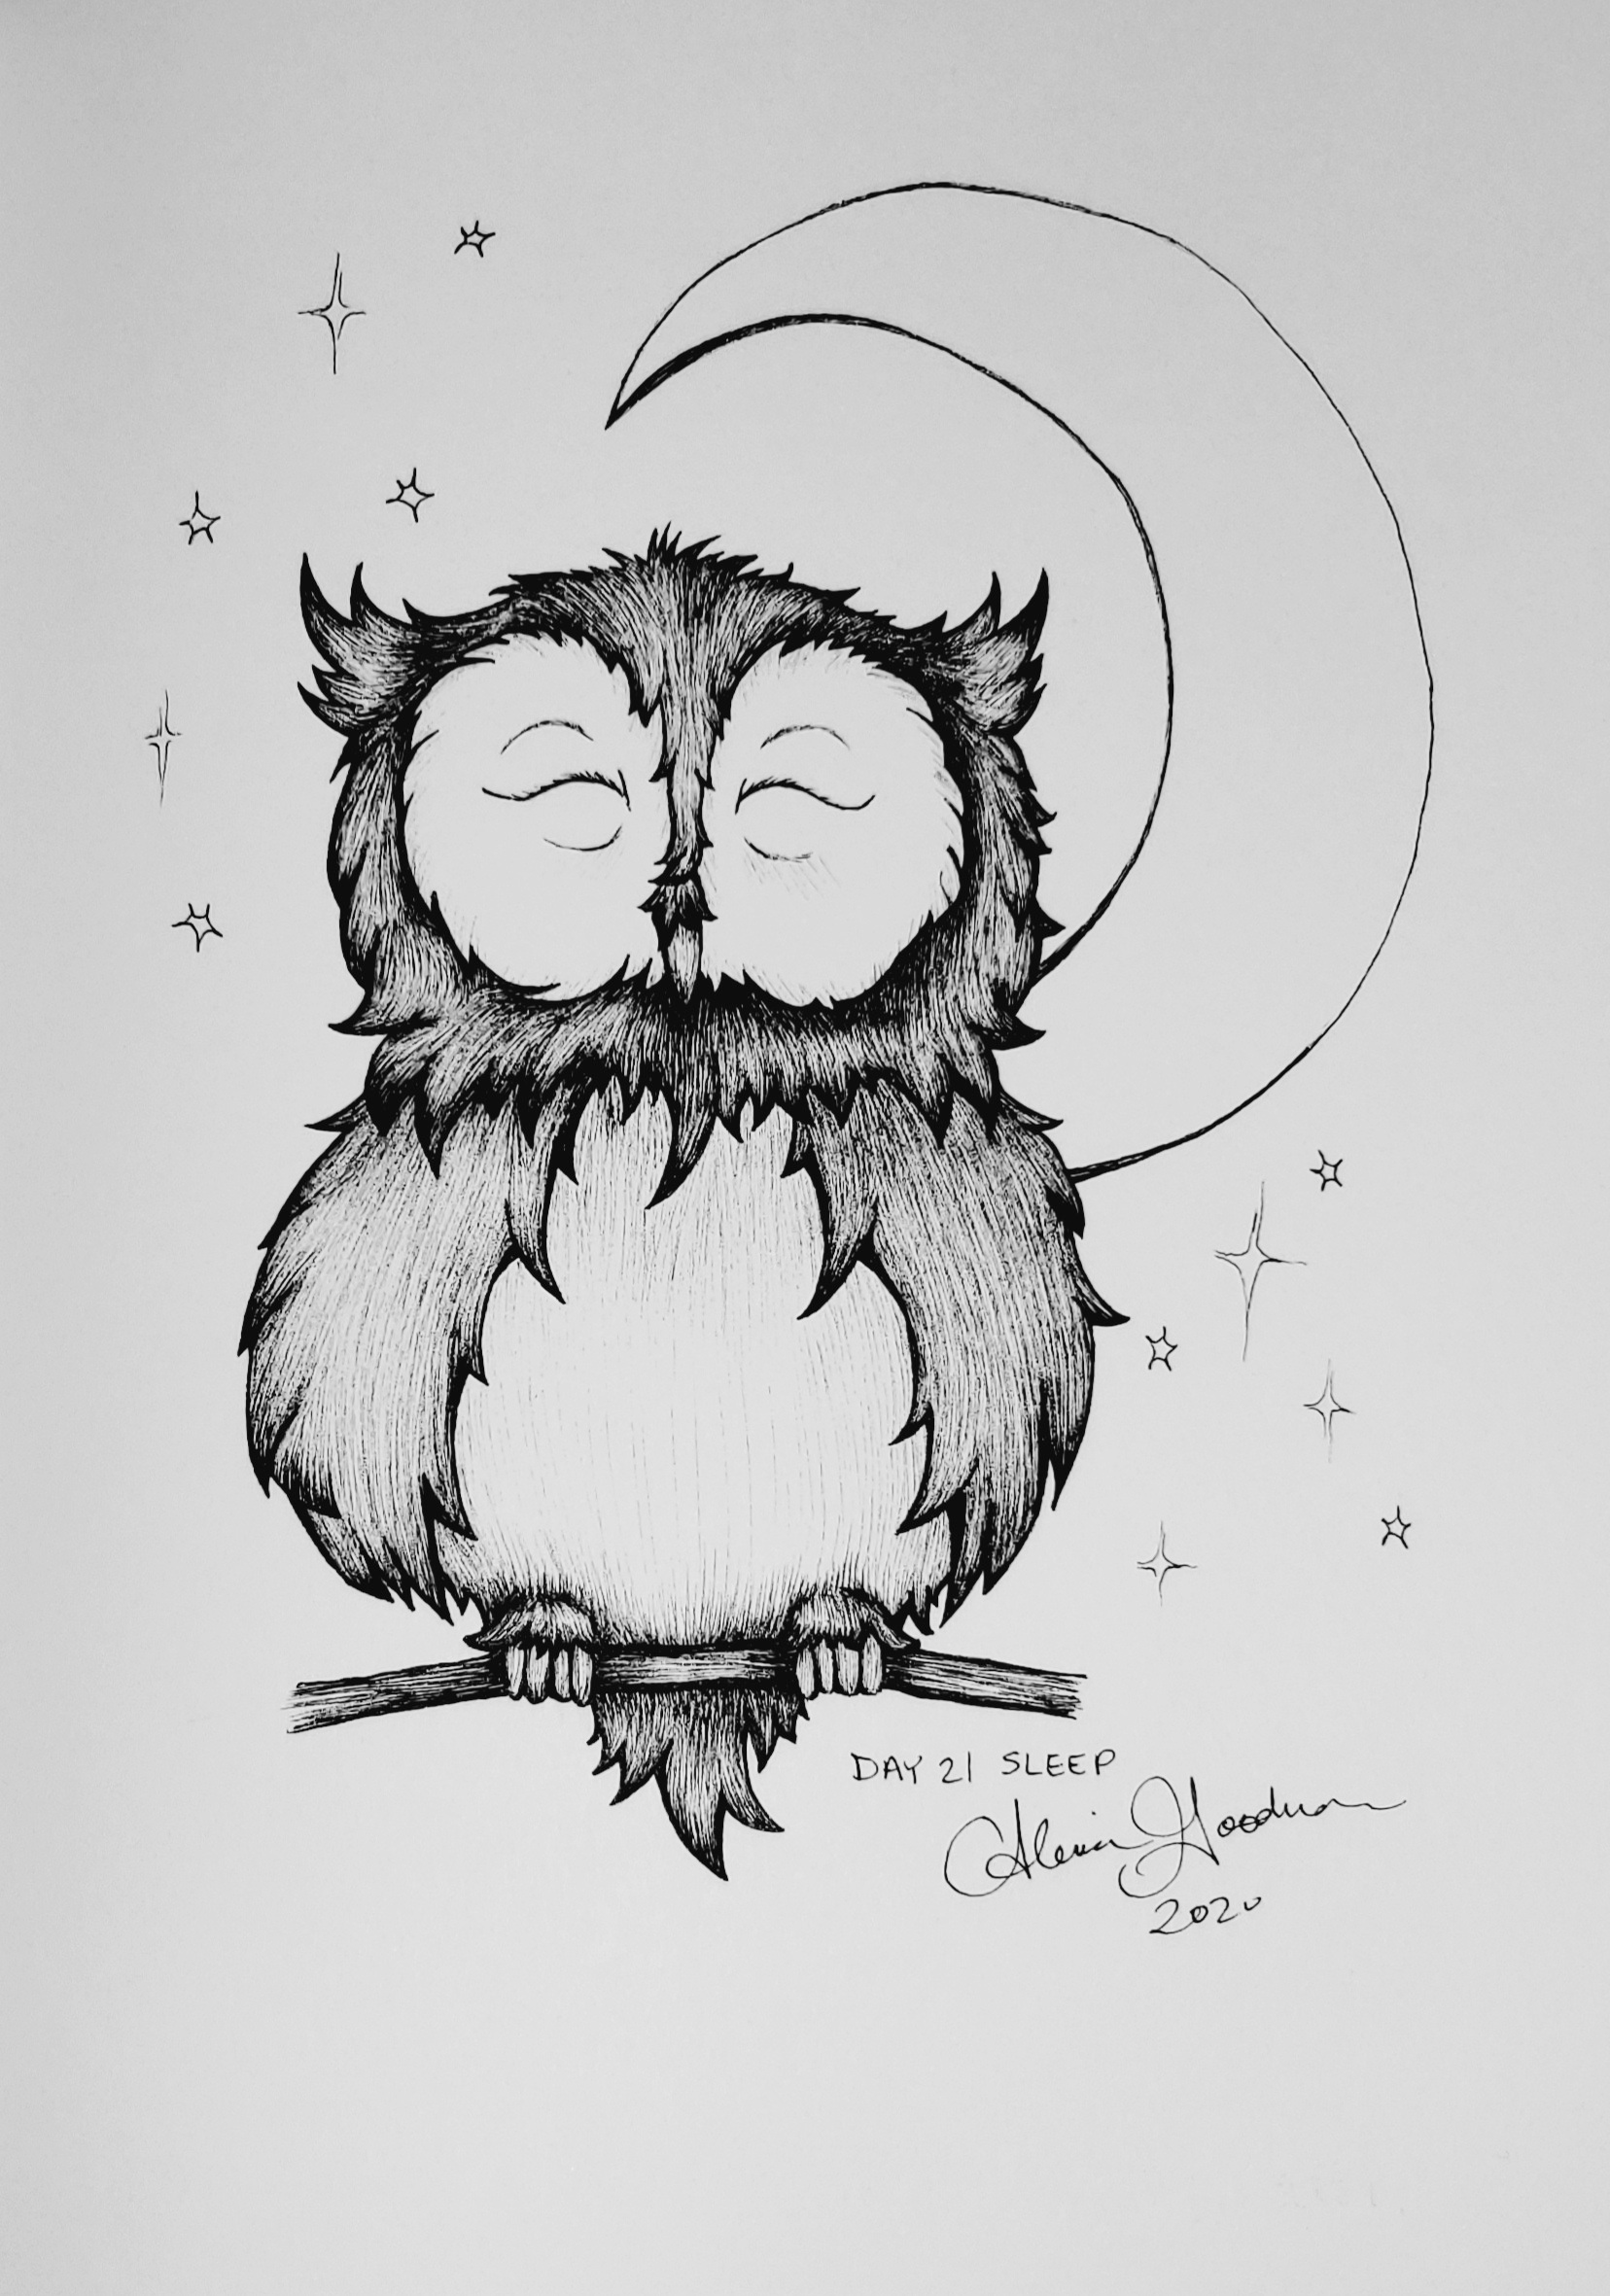 Inktober Day 21 Sleeping owl ink drawing by alecia goodman 2020 to present